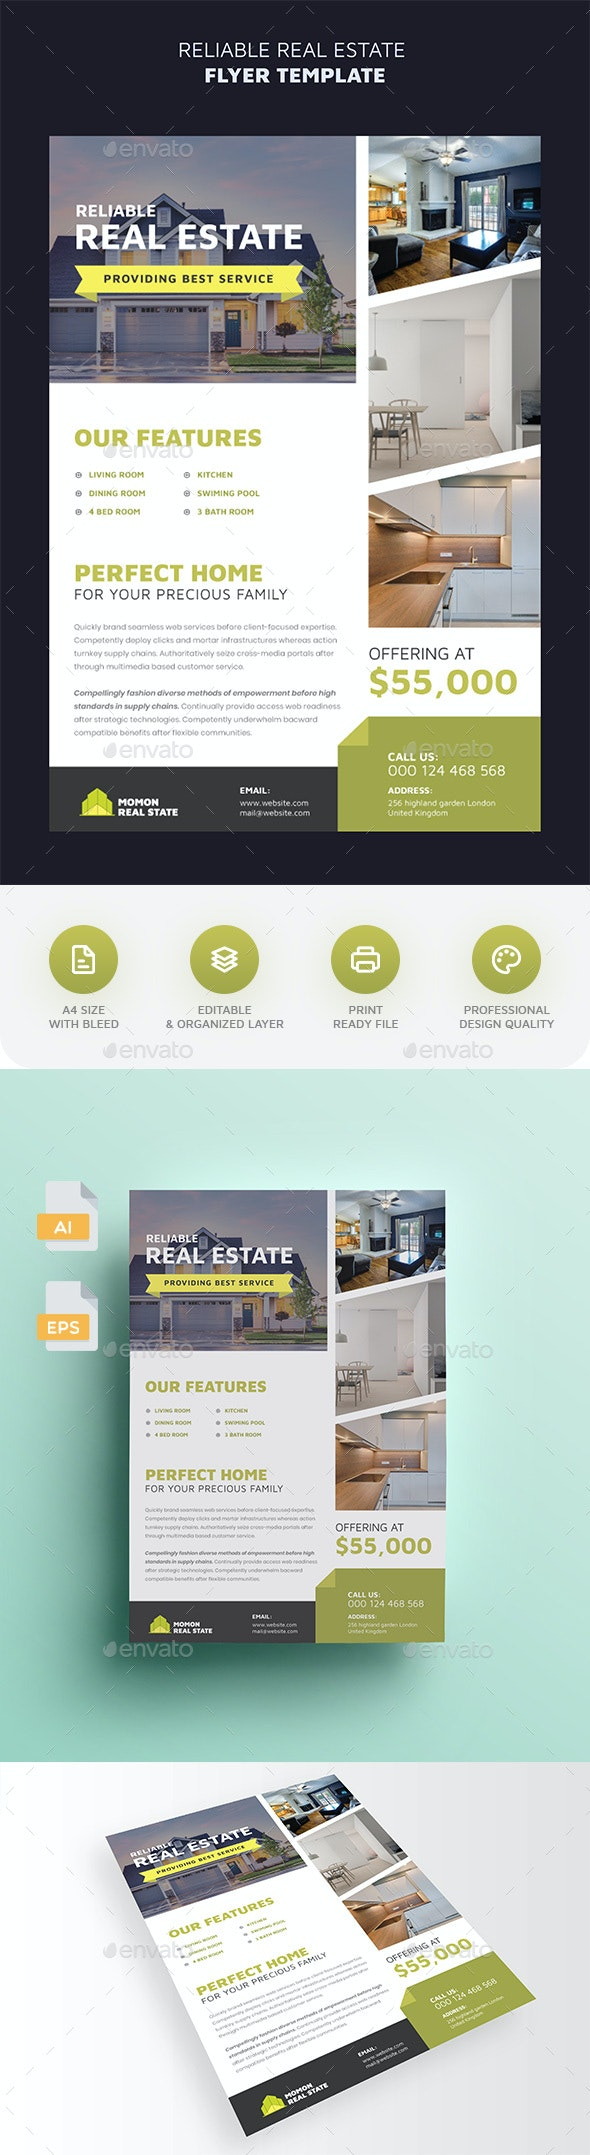 Reliable Real Estate Flyer - Commerce Flyers